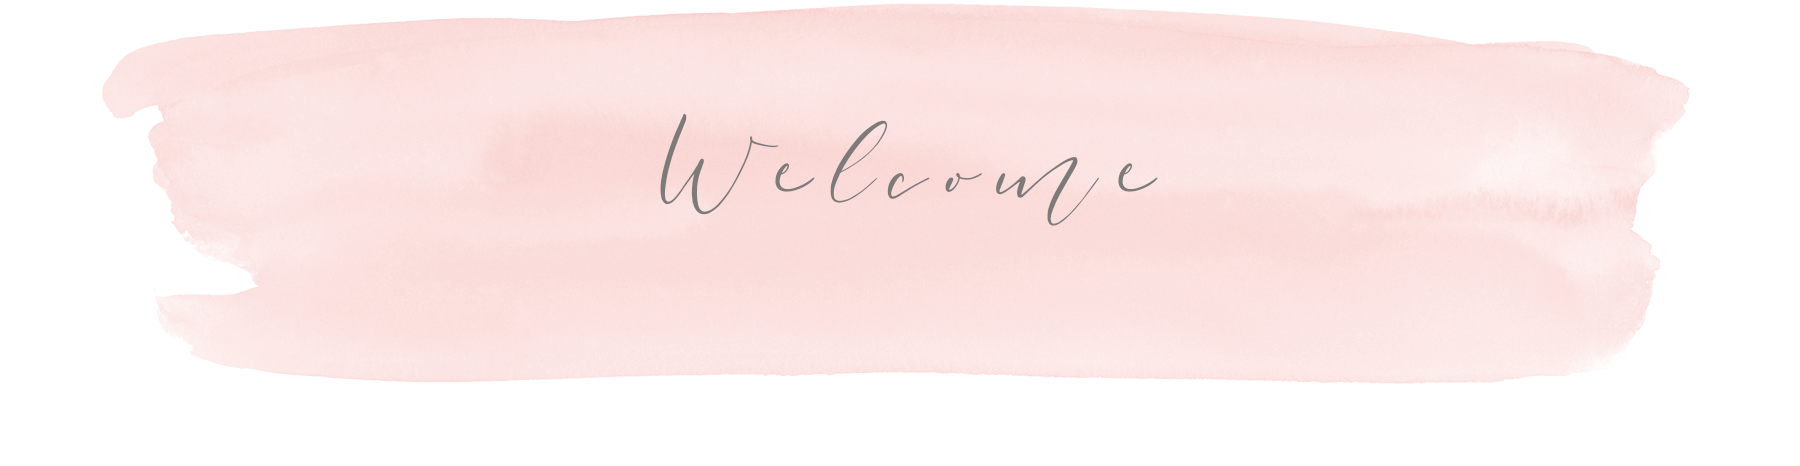 Welcome website pic.png